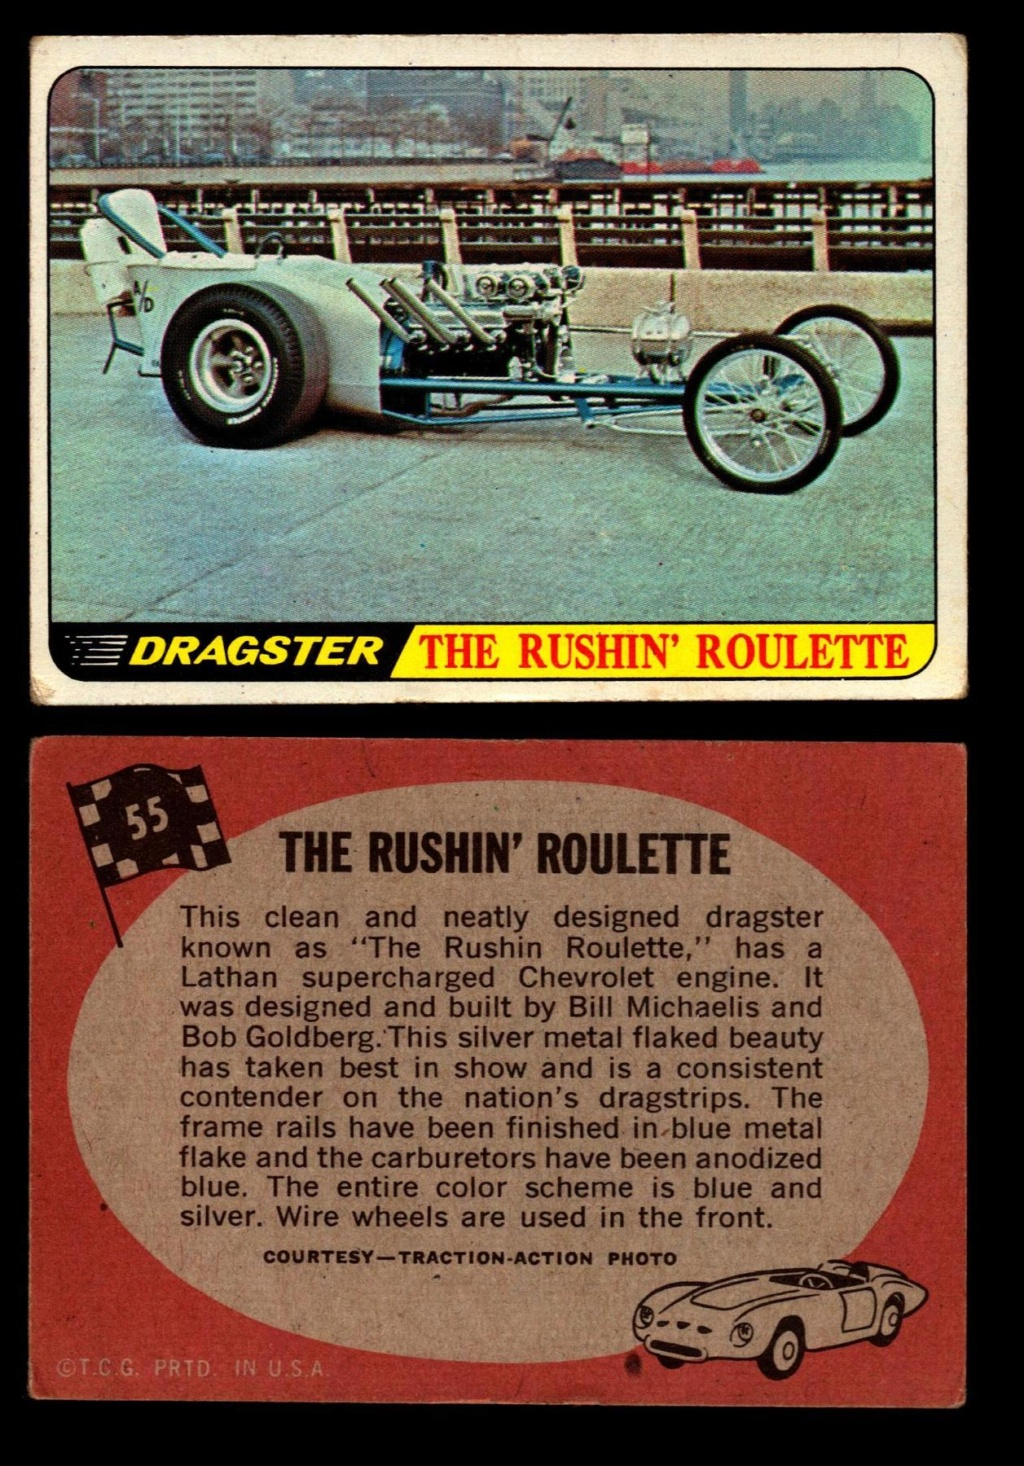 Hot Rods Topps - Vintage Trading Cards 1968 - Custom car - Dragster - Racer - Dream car - Barris Kustom City - Ed Roth Darrill Starbird, Gene Winfield, Bill Cuchenberry - Page 2 55_31d10